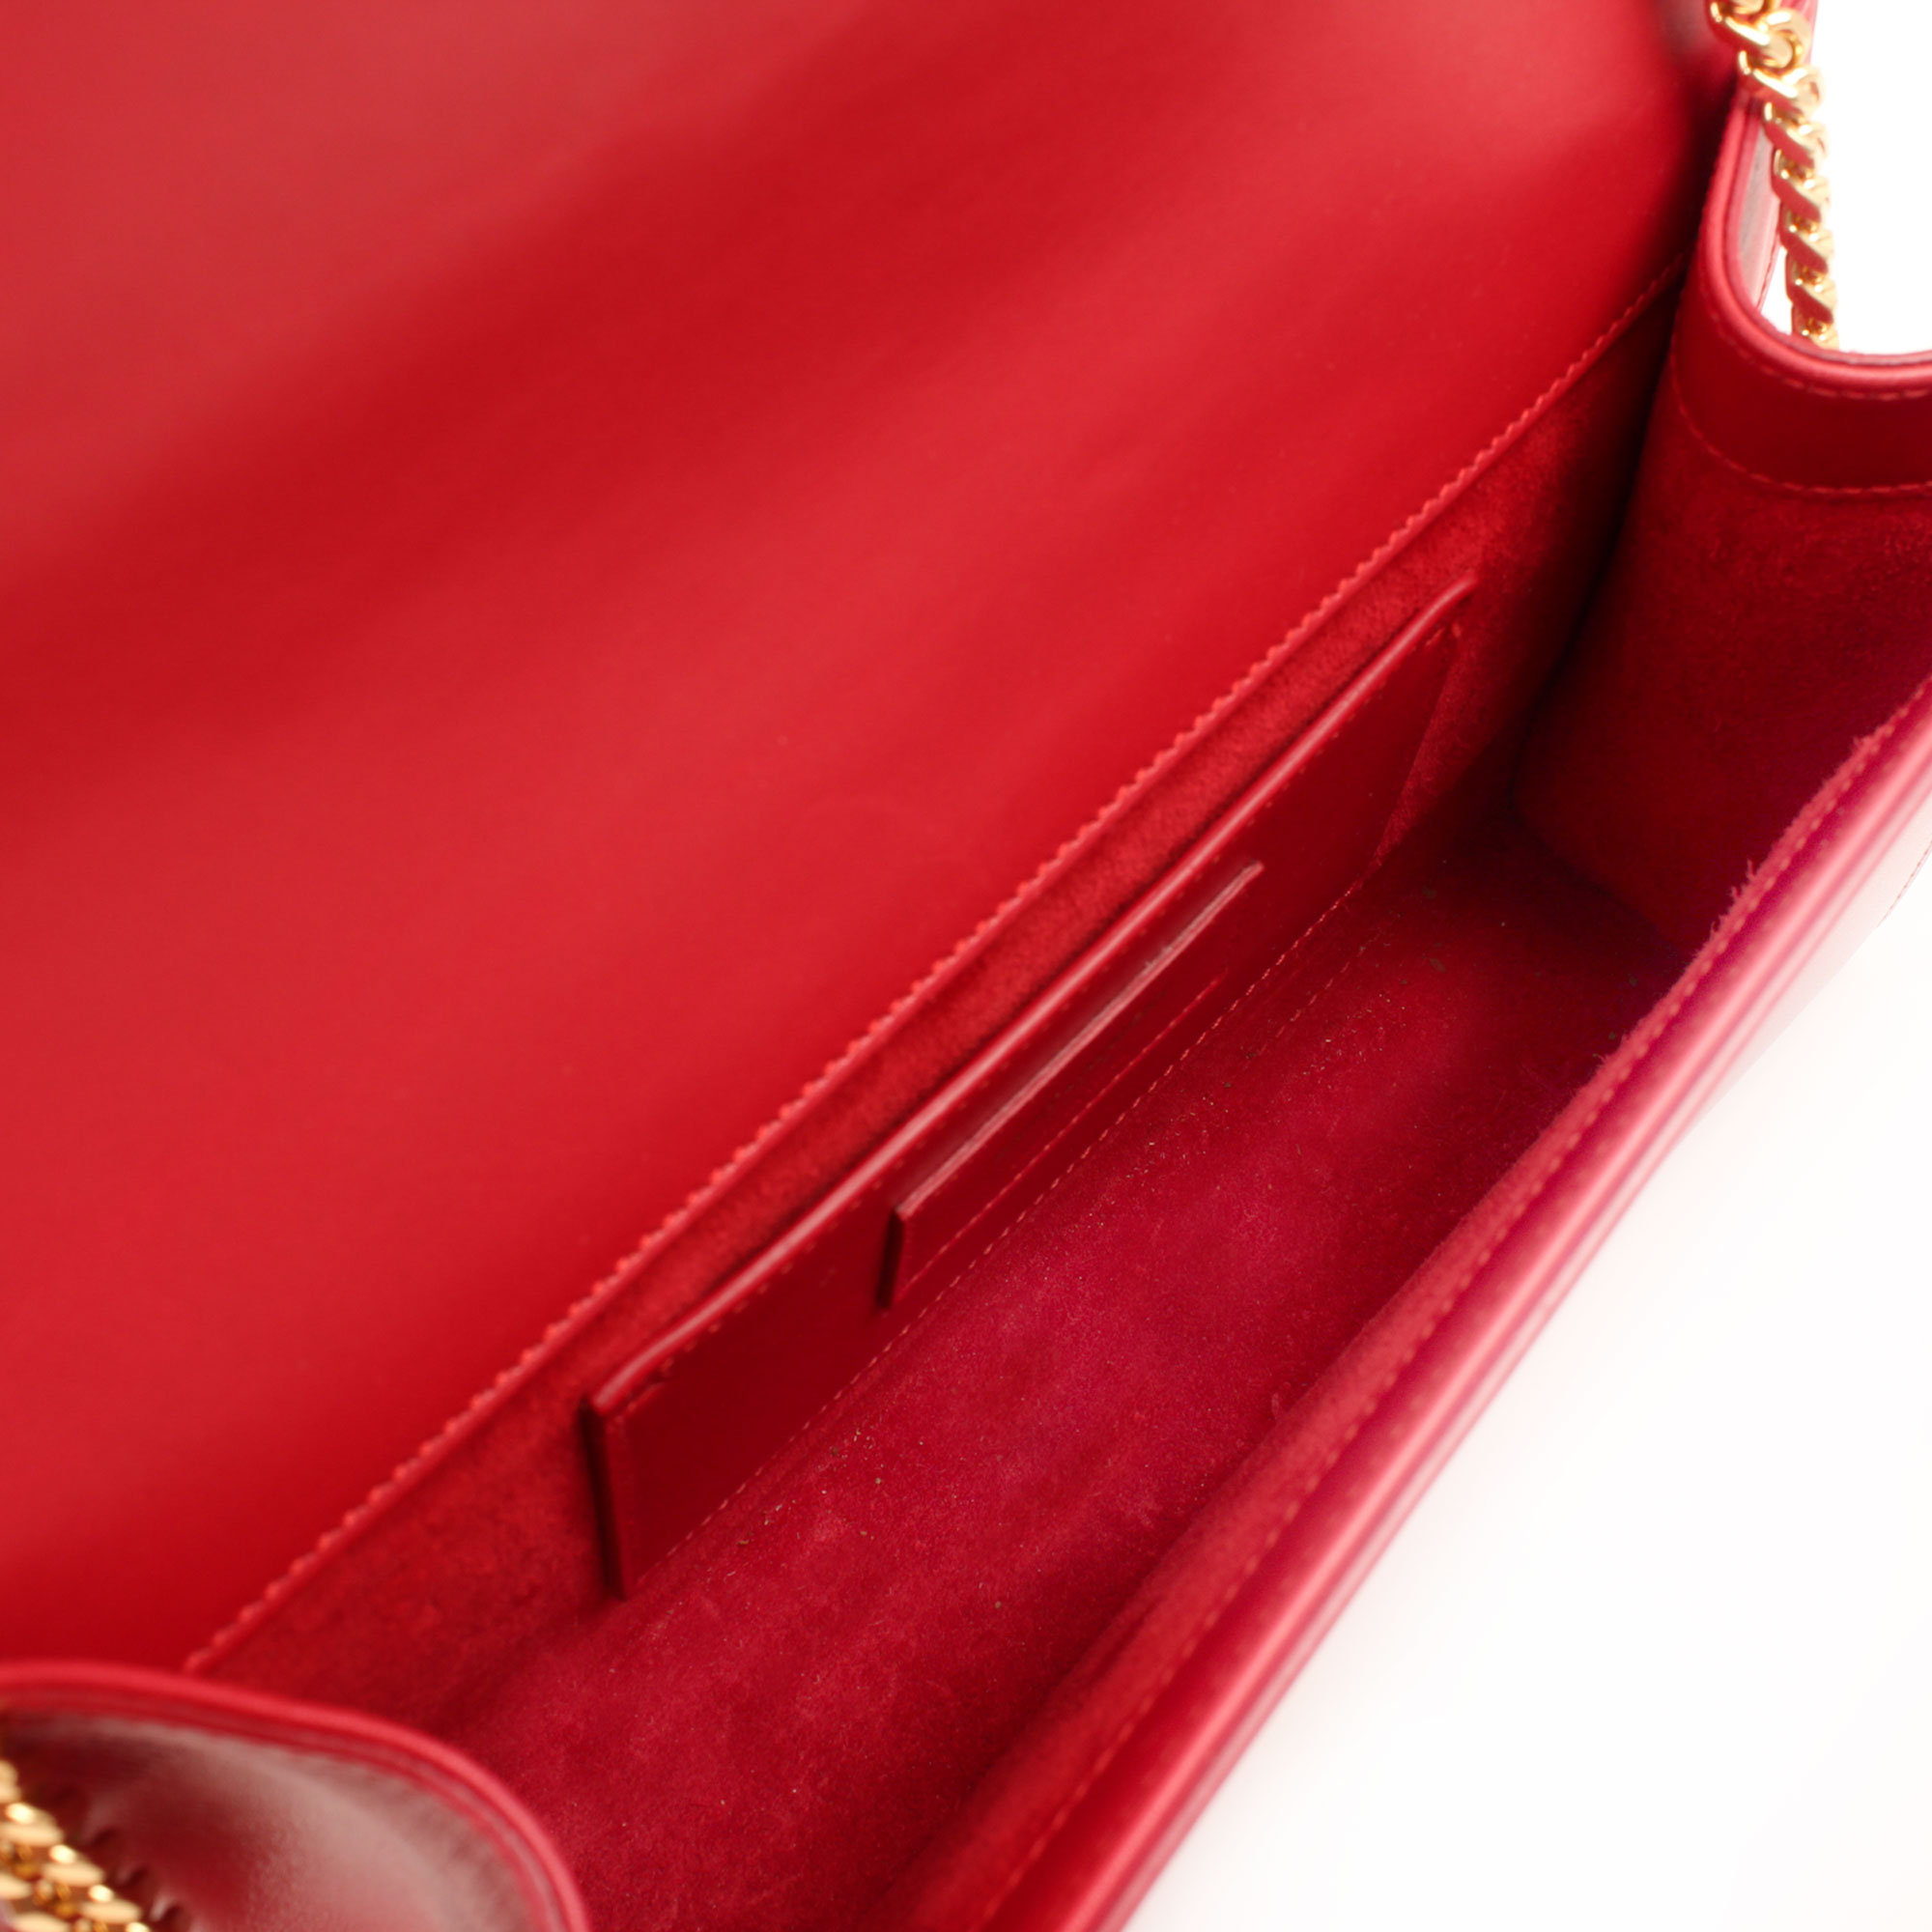 Interior image of ysl kate medium bag red calfskin leather